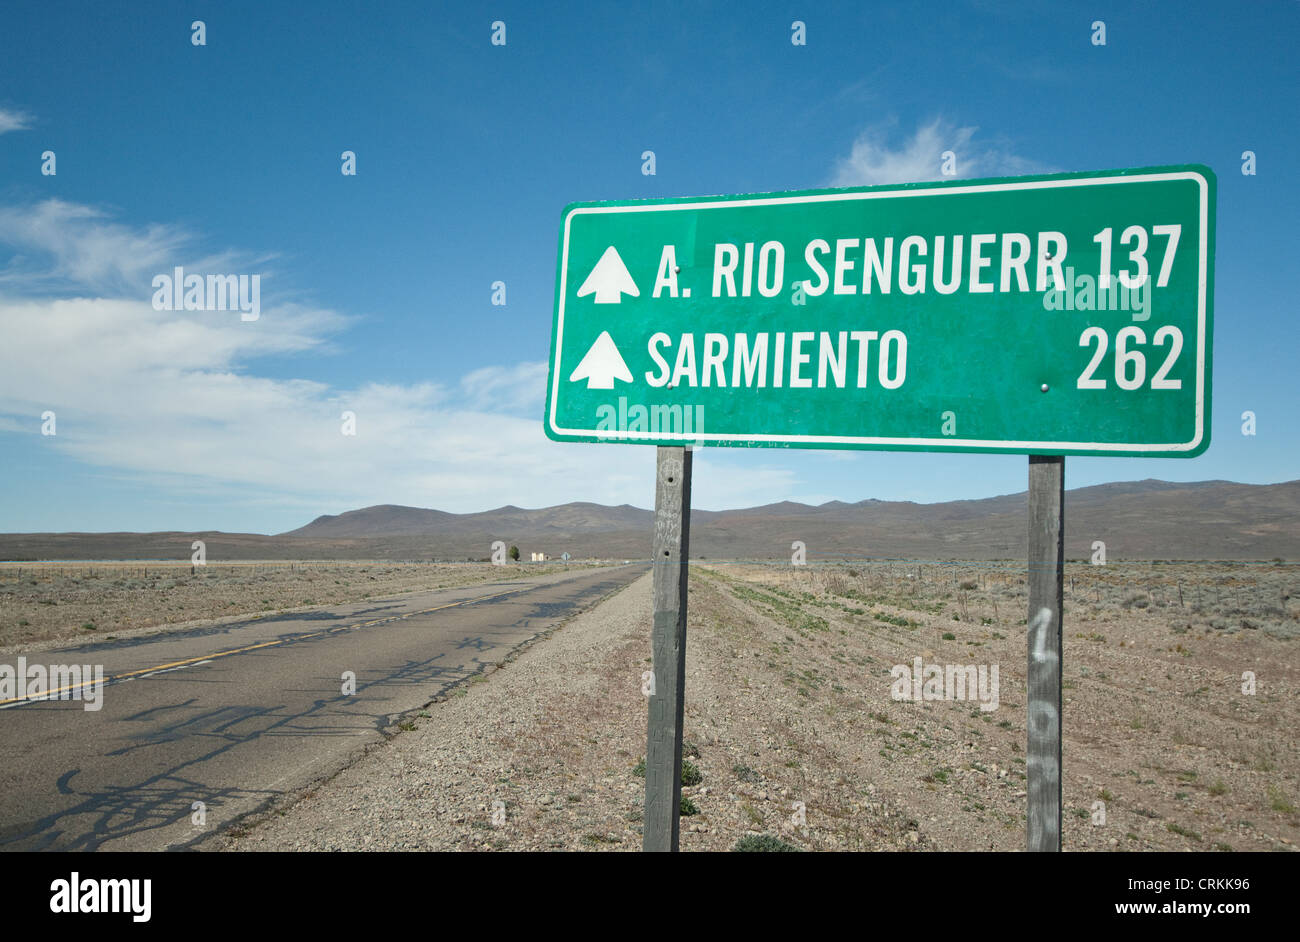 Route 40 sign with town distances in km Chubut Provence, Patagonia, Argentina - Stock Image